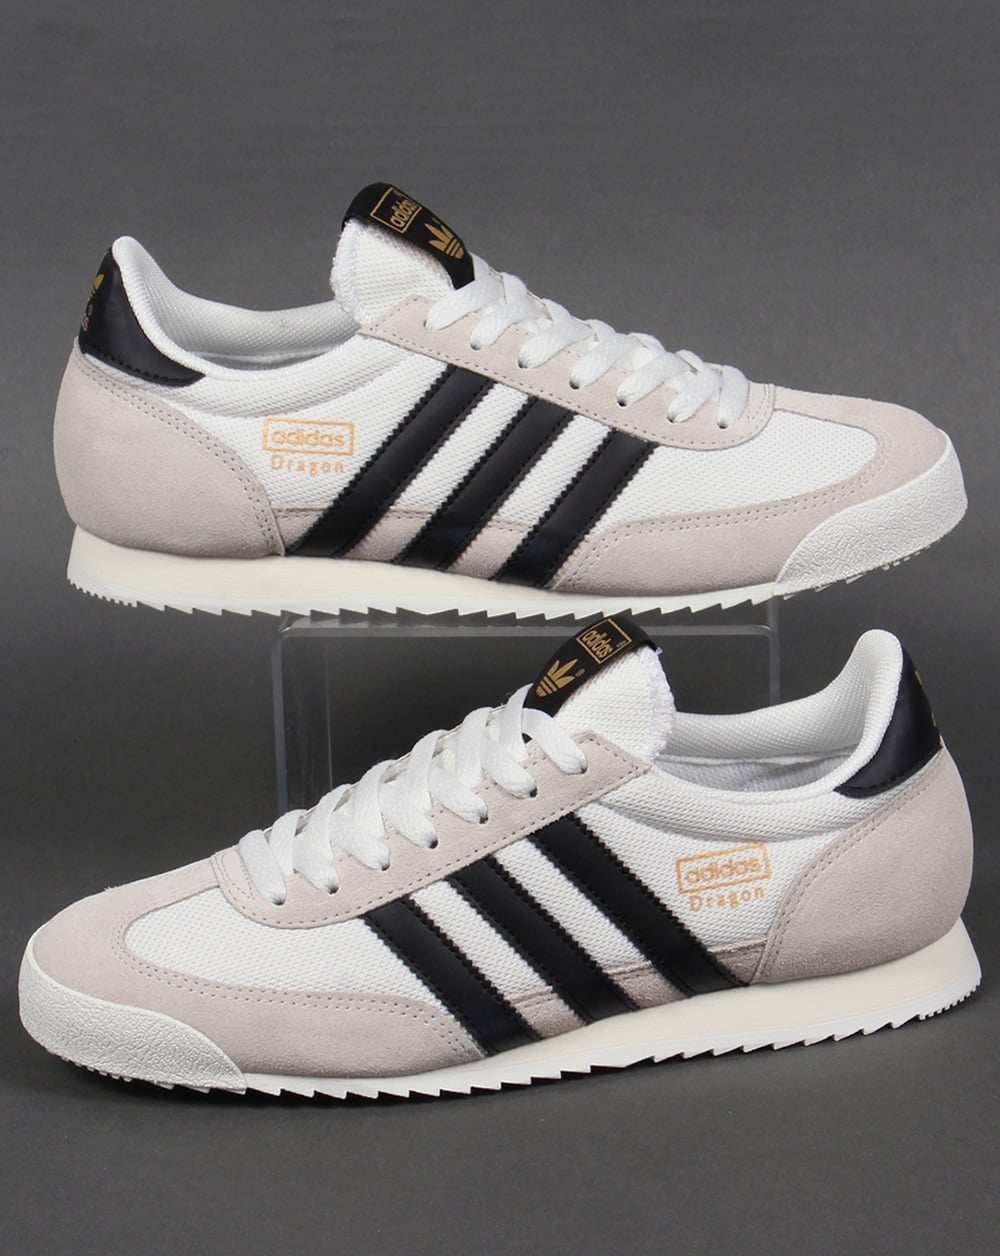 adidas dragon trainers